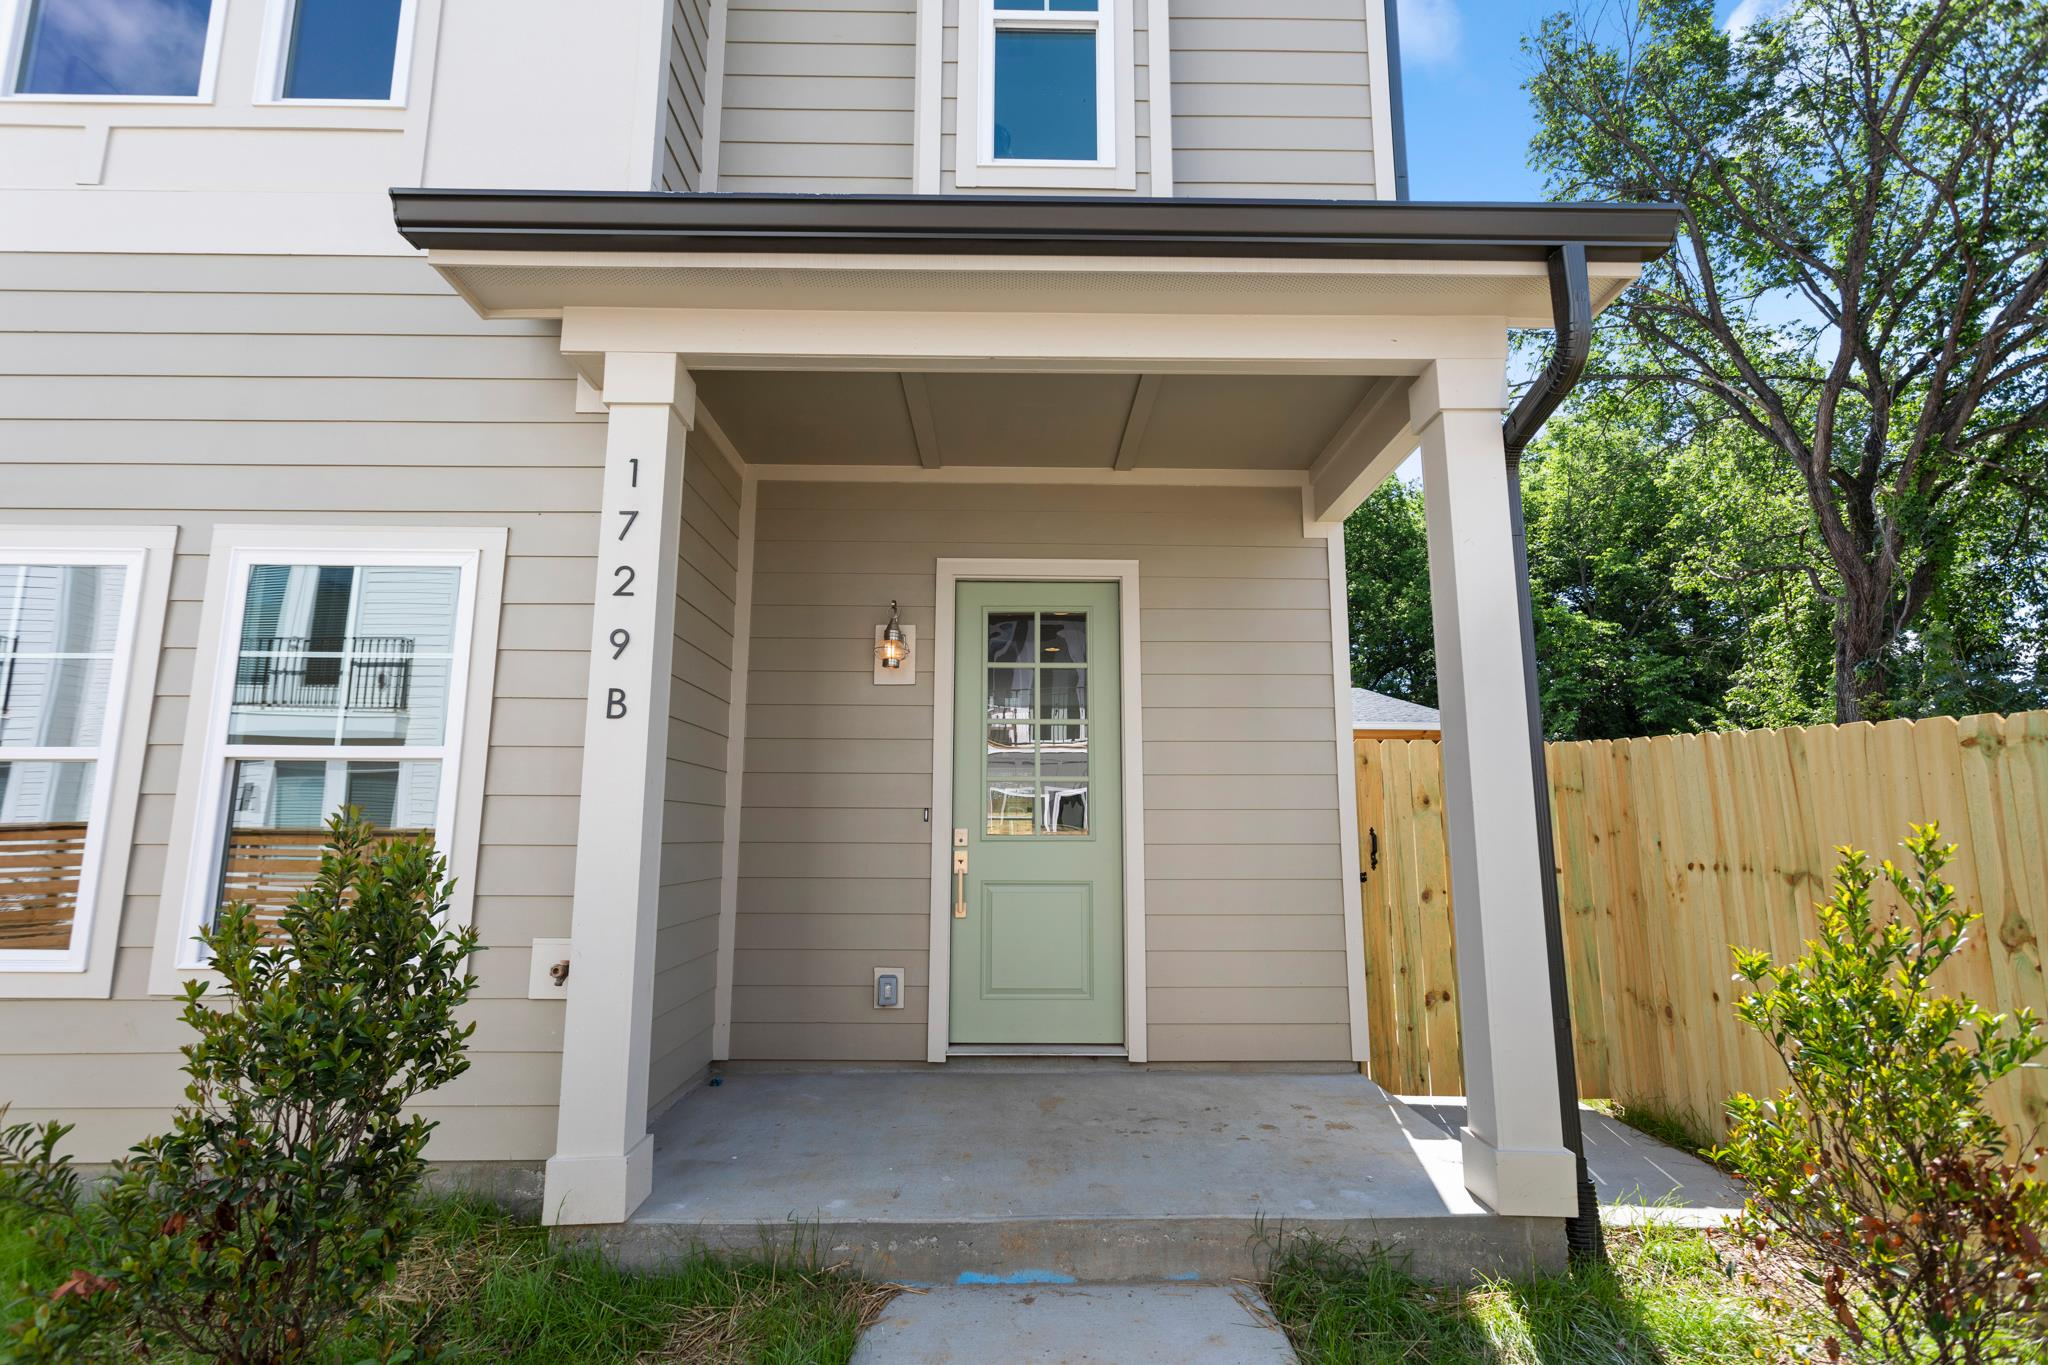 1729B Pecan Street, Nashville, TN   PURCHASED PRICE $365,000  3 BED · 2.5 BATHs · 1817 SQF